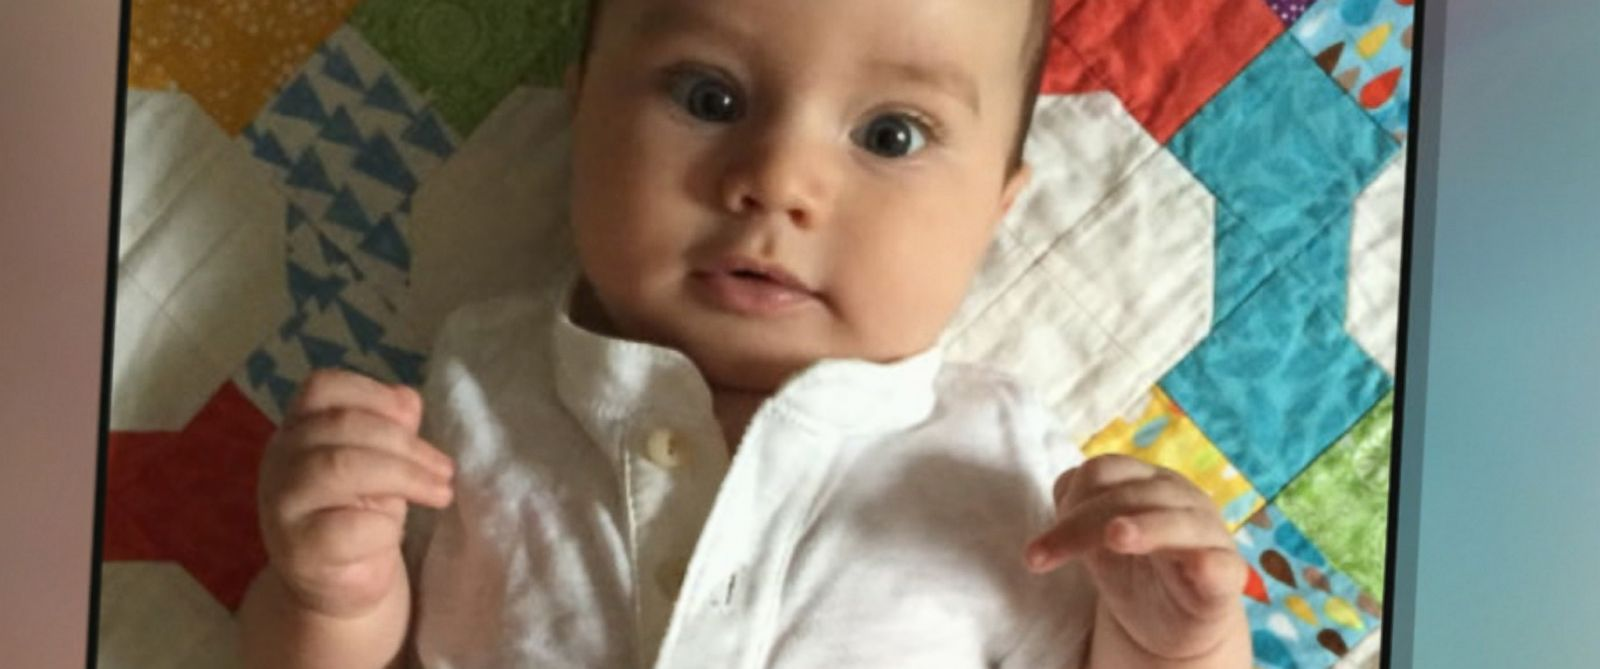 PHOTO: An allegedly unlicensed New York City day care is being investigated after the death of Karl Towndrow, who was 3 months old.